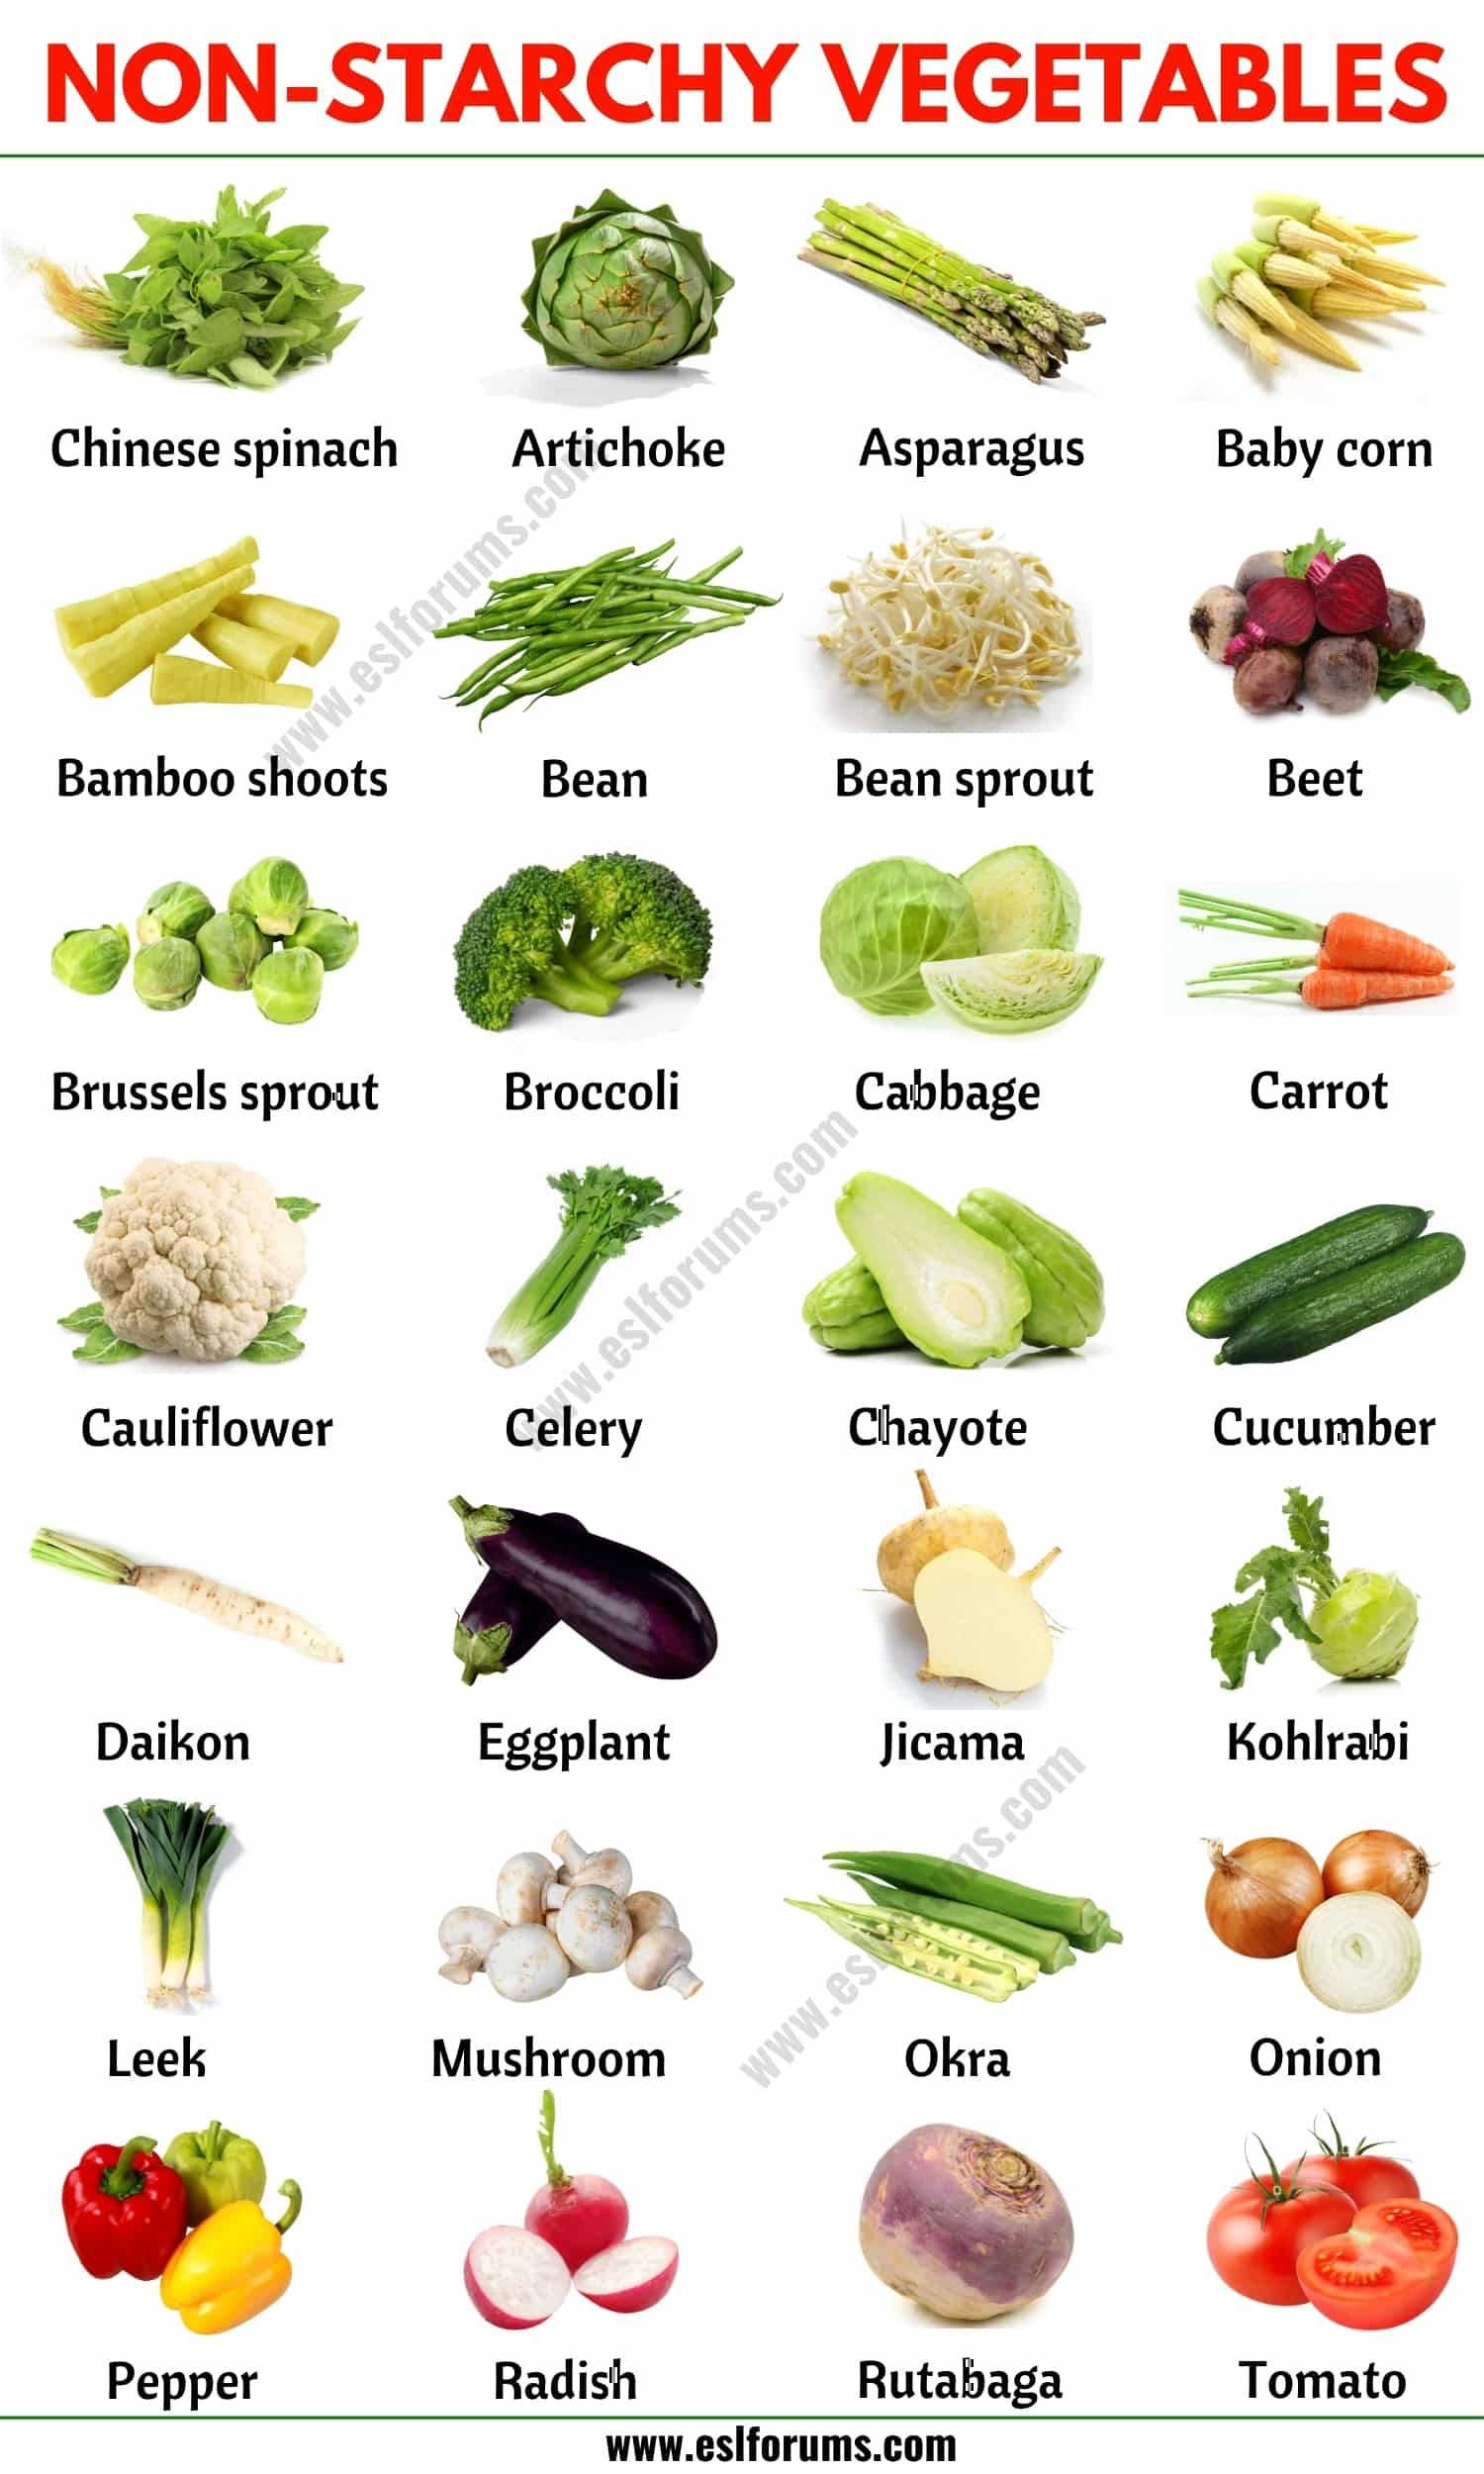 Non Starchy Vegetables: List of Non-starchy Vegetables with the Picture!